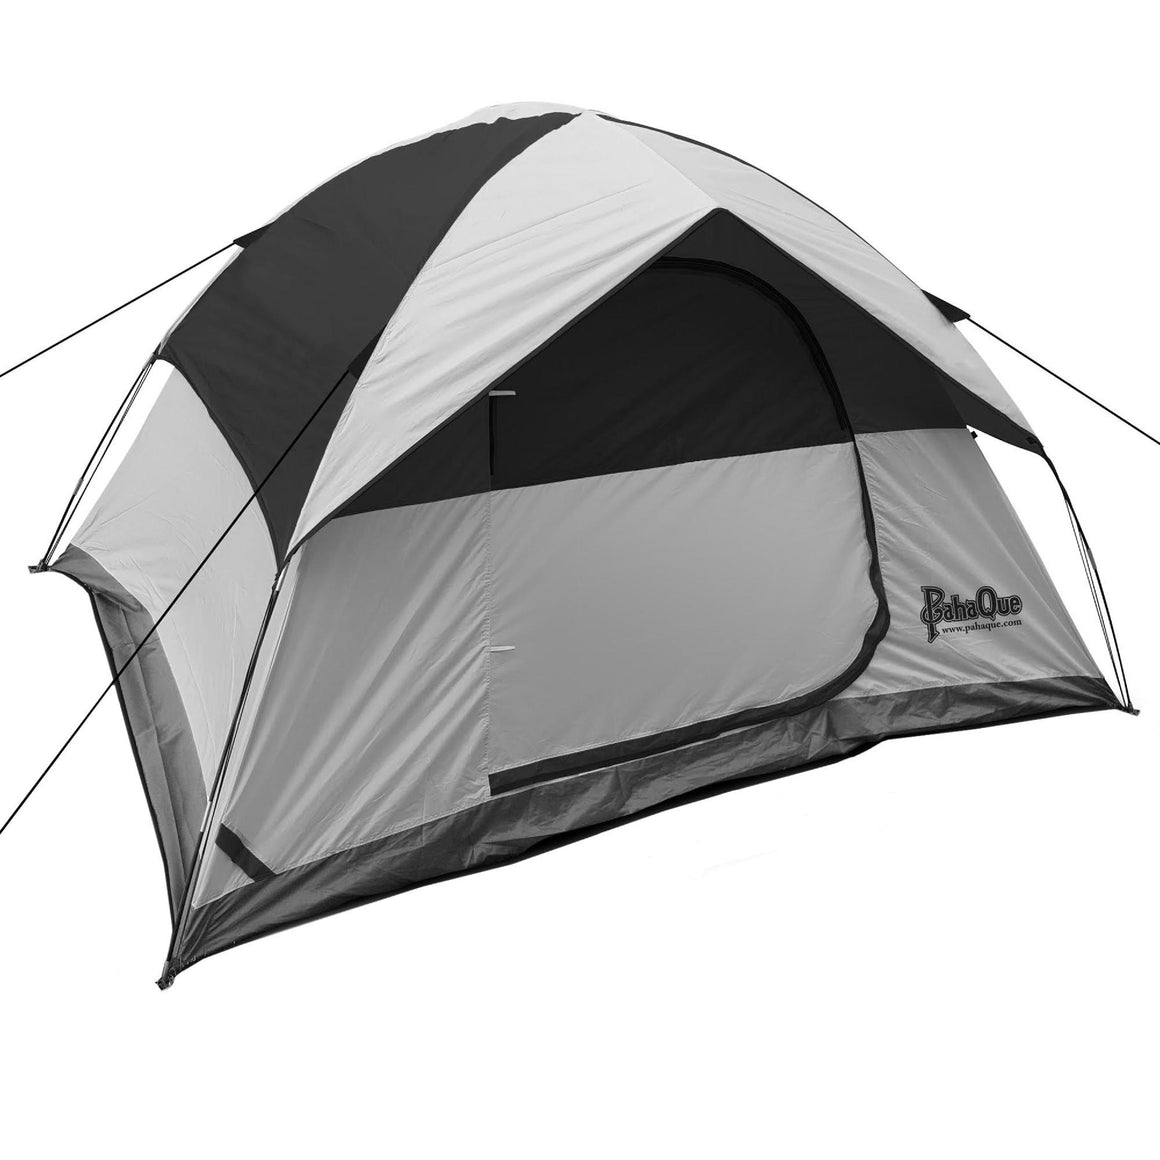 Rendezvous 4 Person Dome Tent, Gray-Black